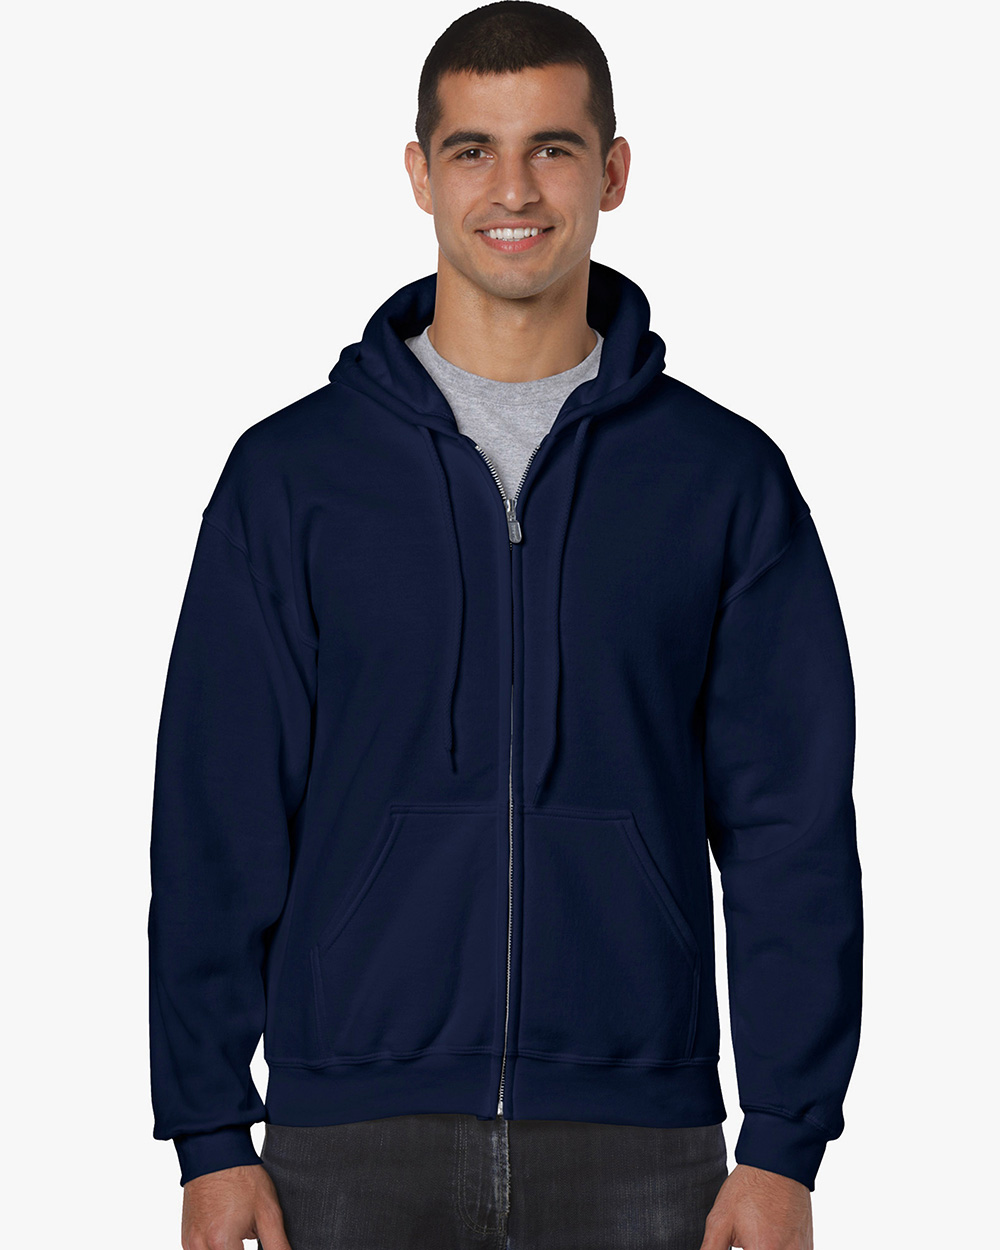 Gildan 18600     Classic Fit Adult Full Zip Sweatshir  t    50% Cotton / 50% Polyester Fleece